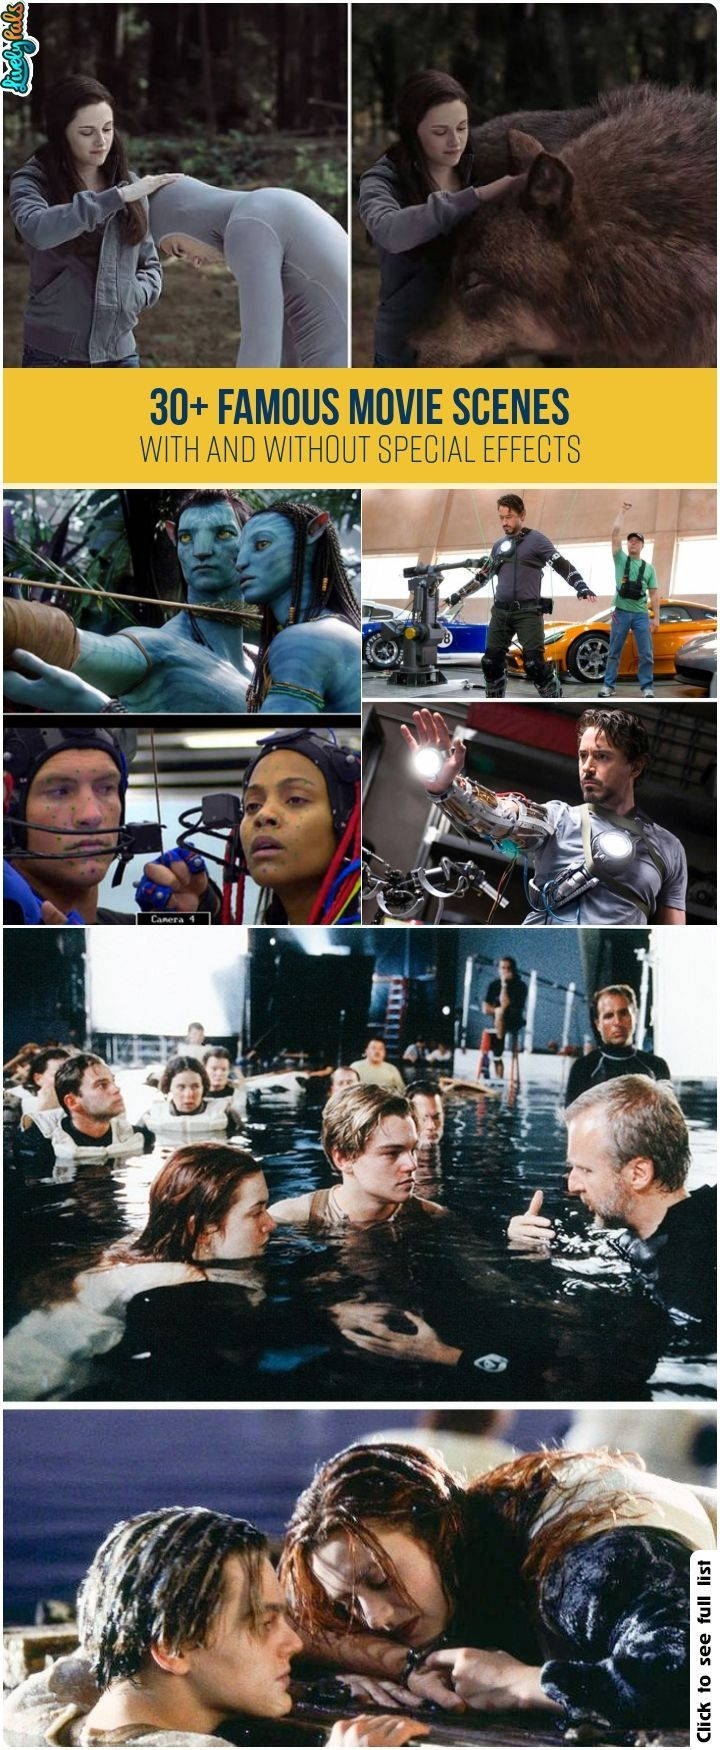 30+ Famous Movie Scenes With And Without Special Effects